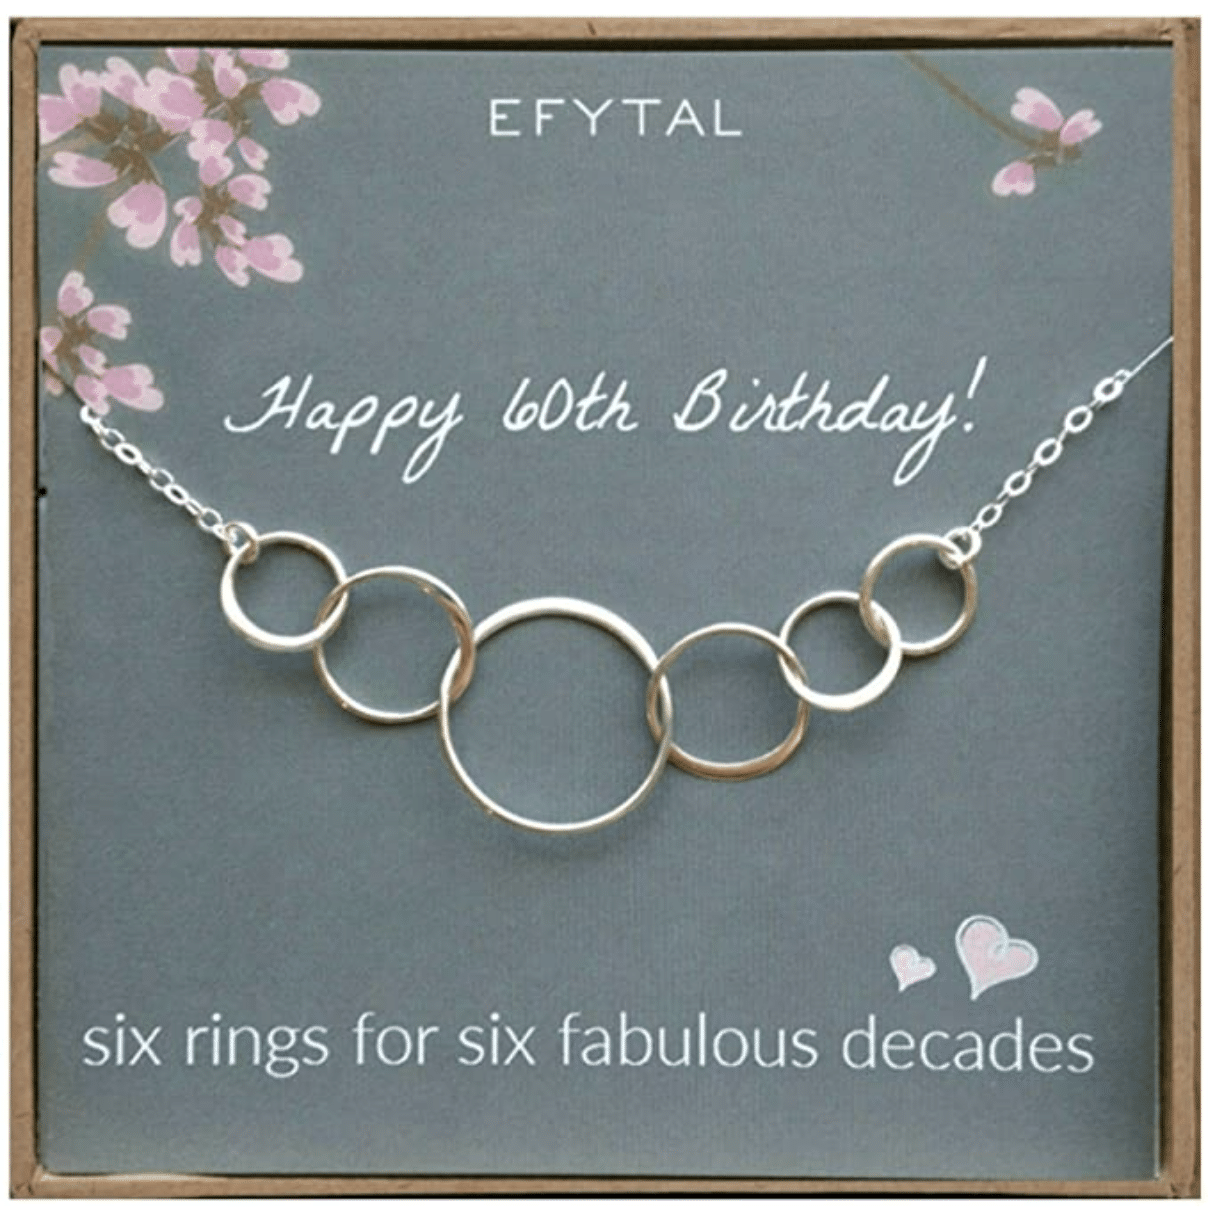 60th-birthday-gift-ideas-necklace